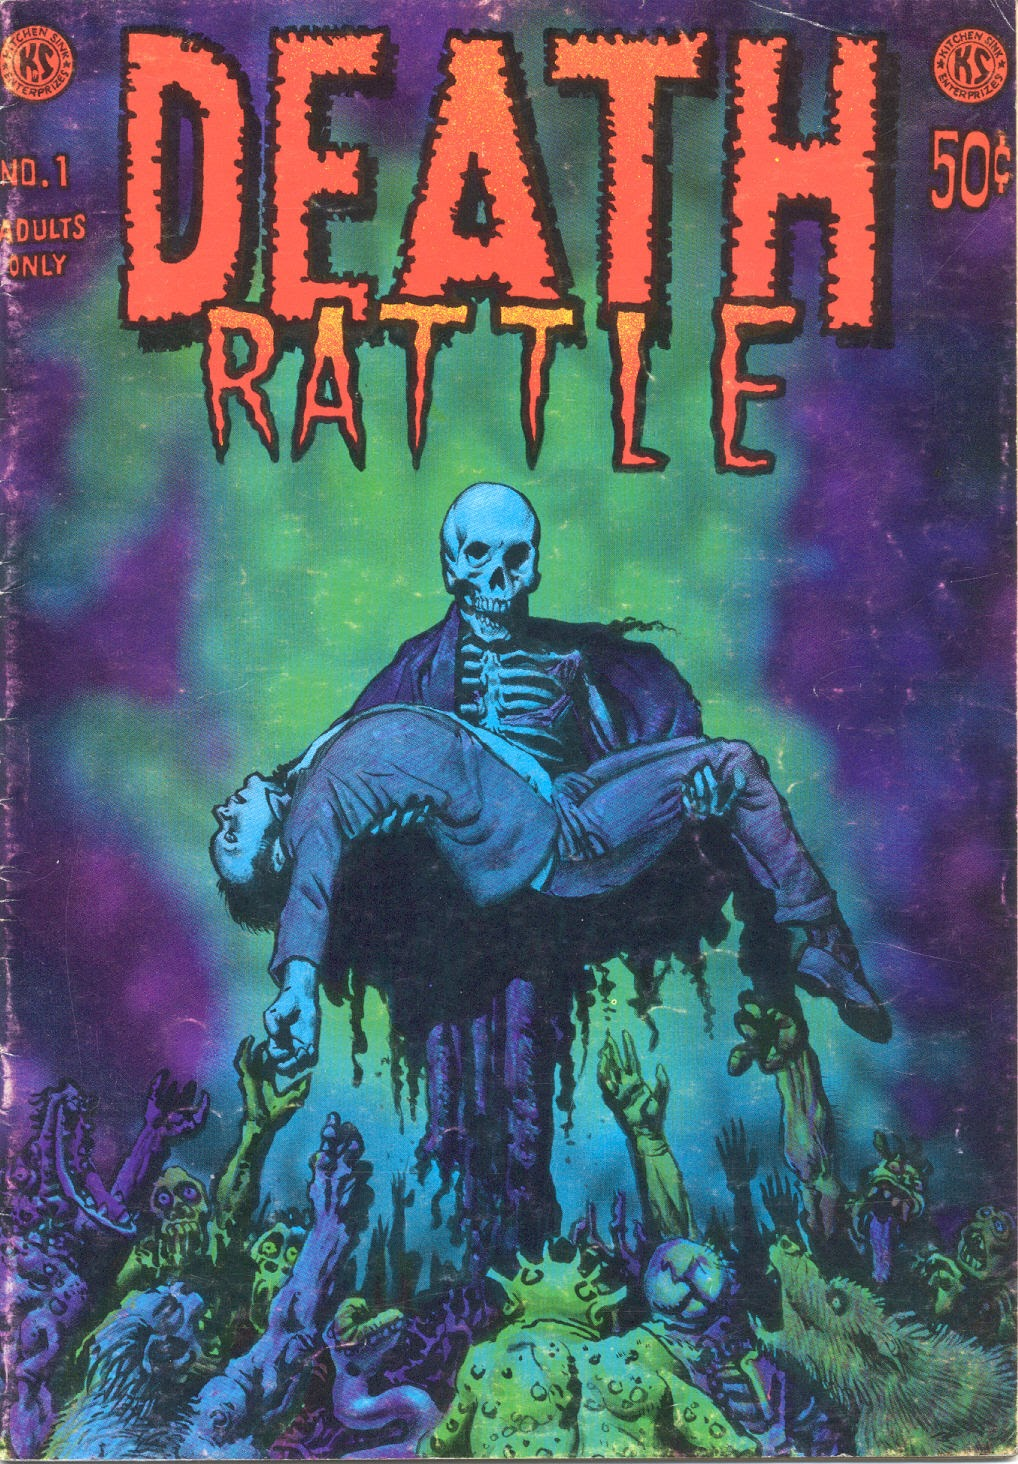 Gastric fortitude from Death Rattle #1 1972